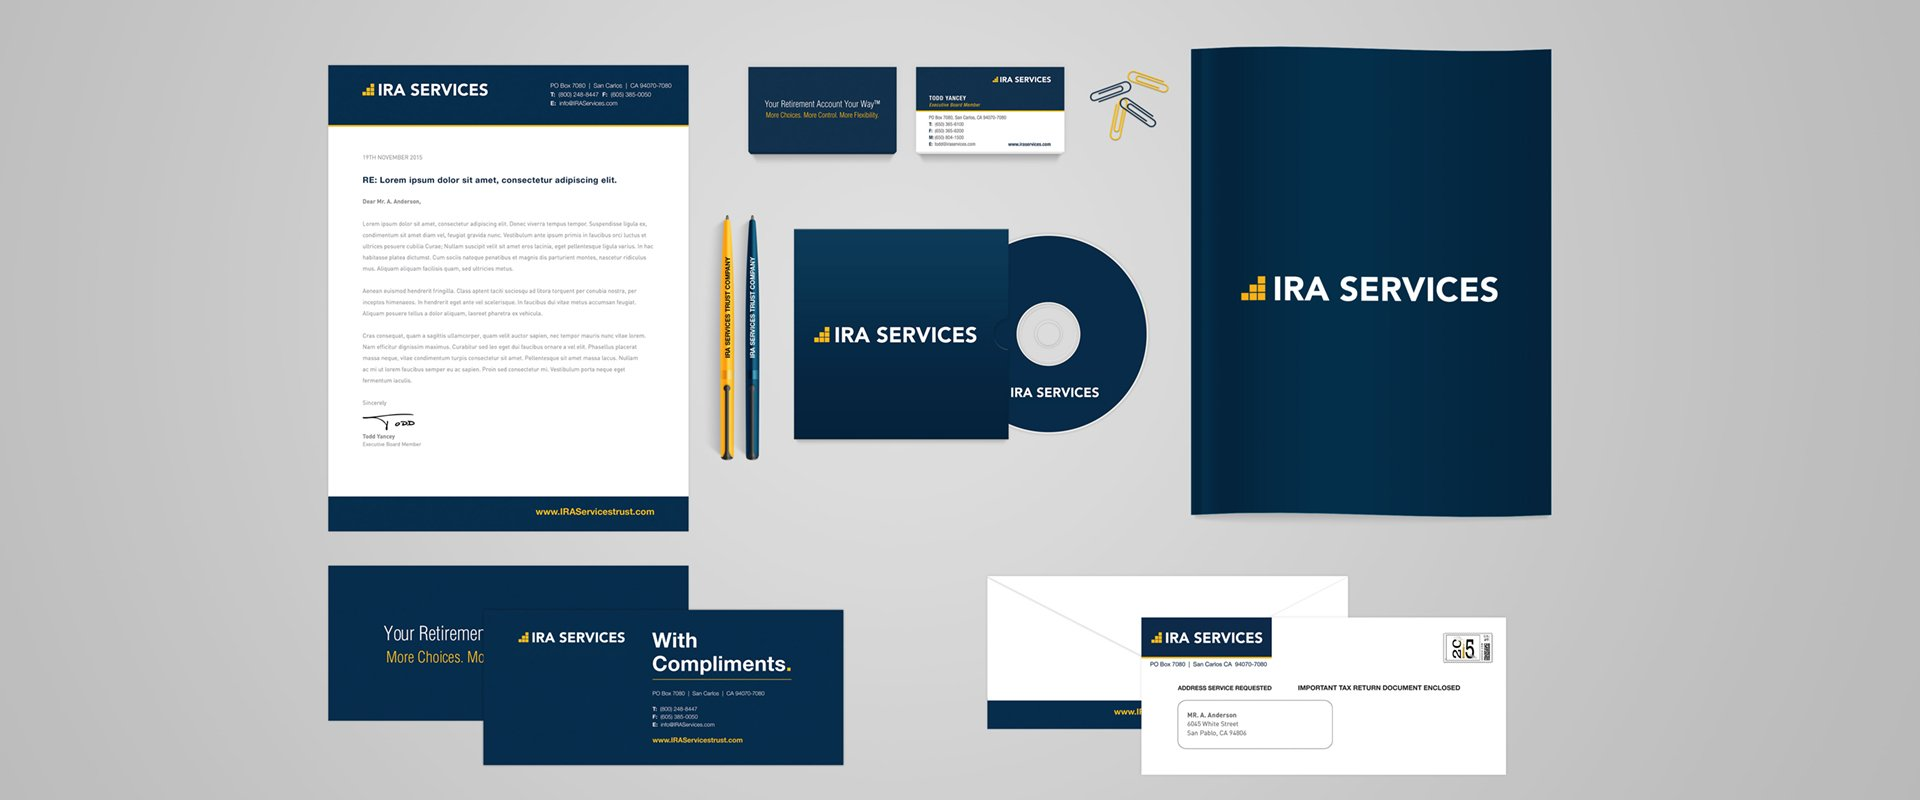 Financial services branded stationery including letterhead, business cards, cd case, pens, compliment slips and envelopes.